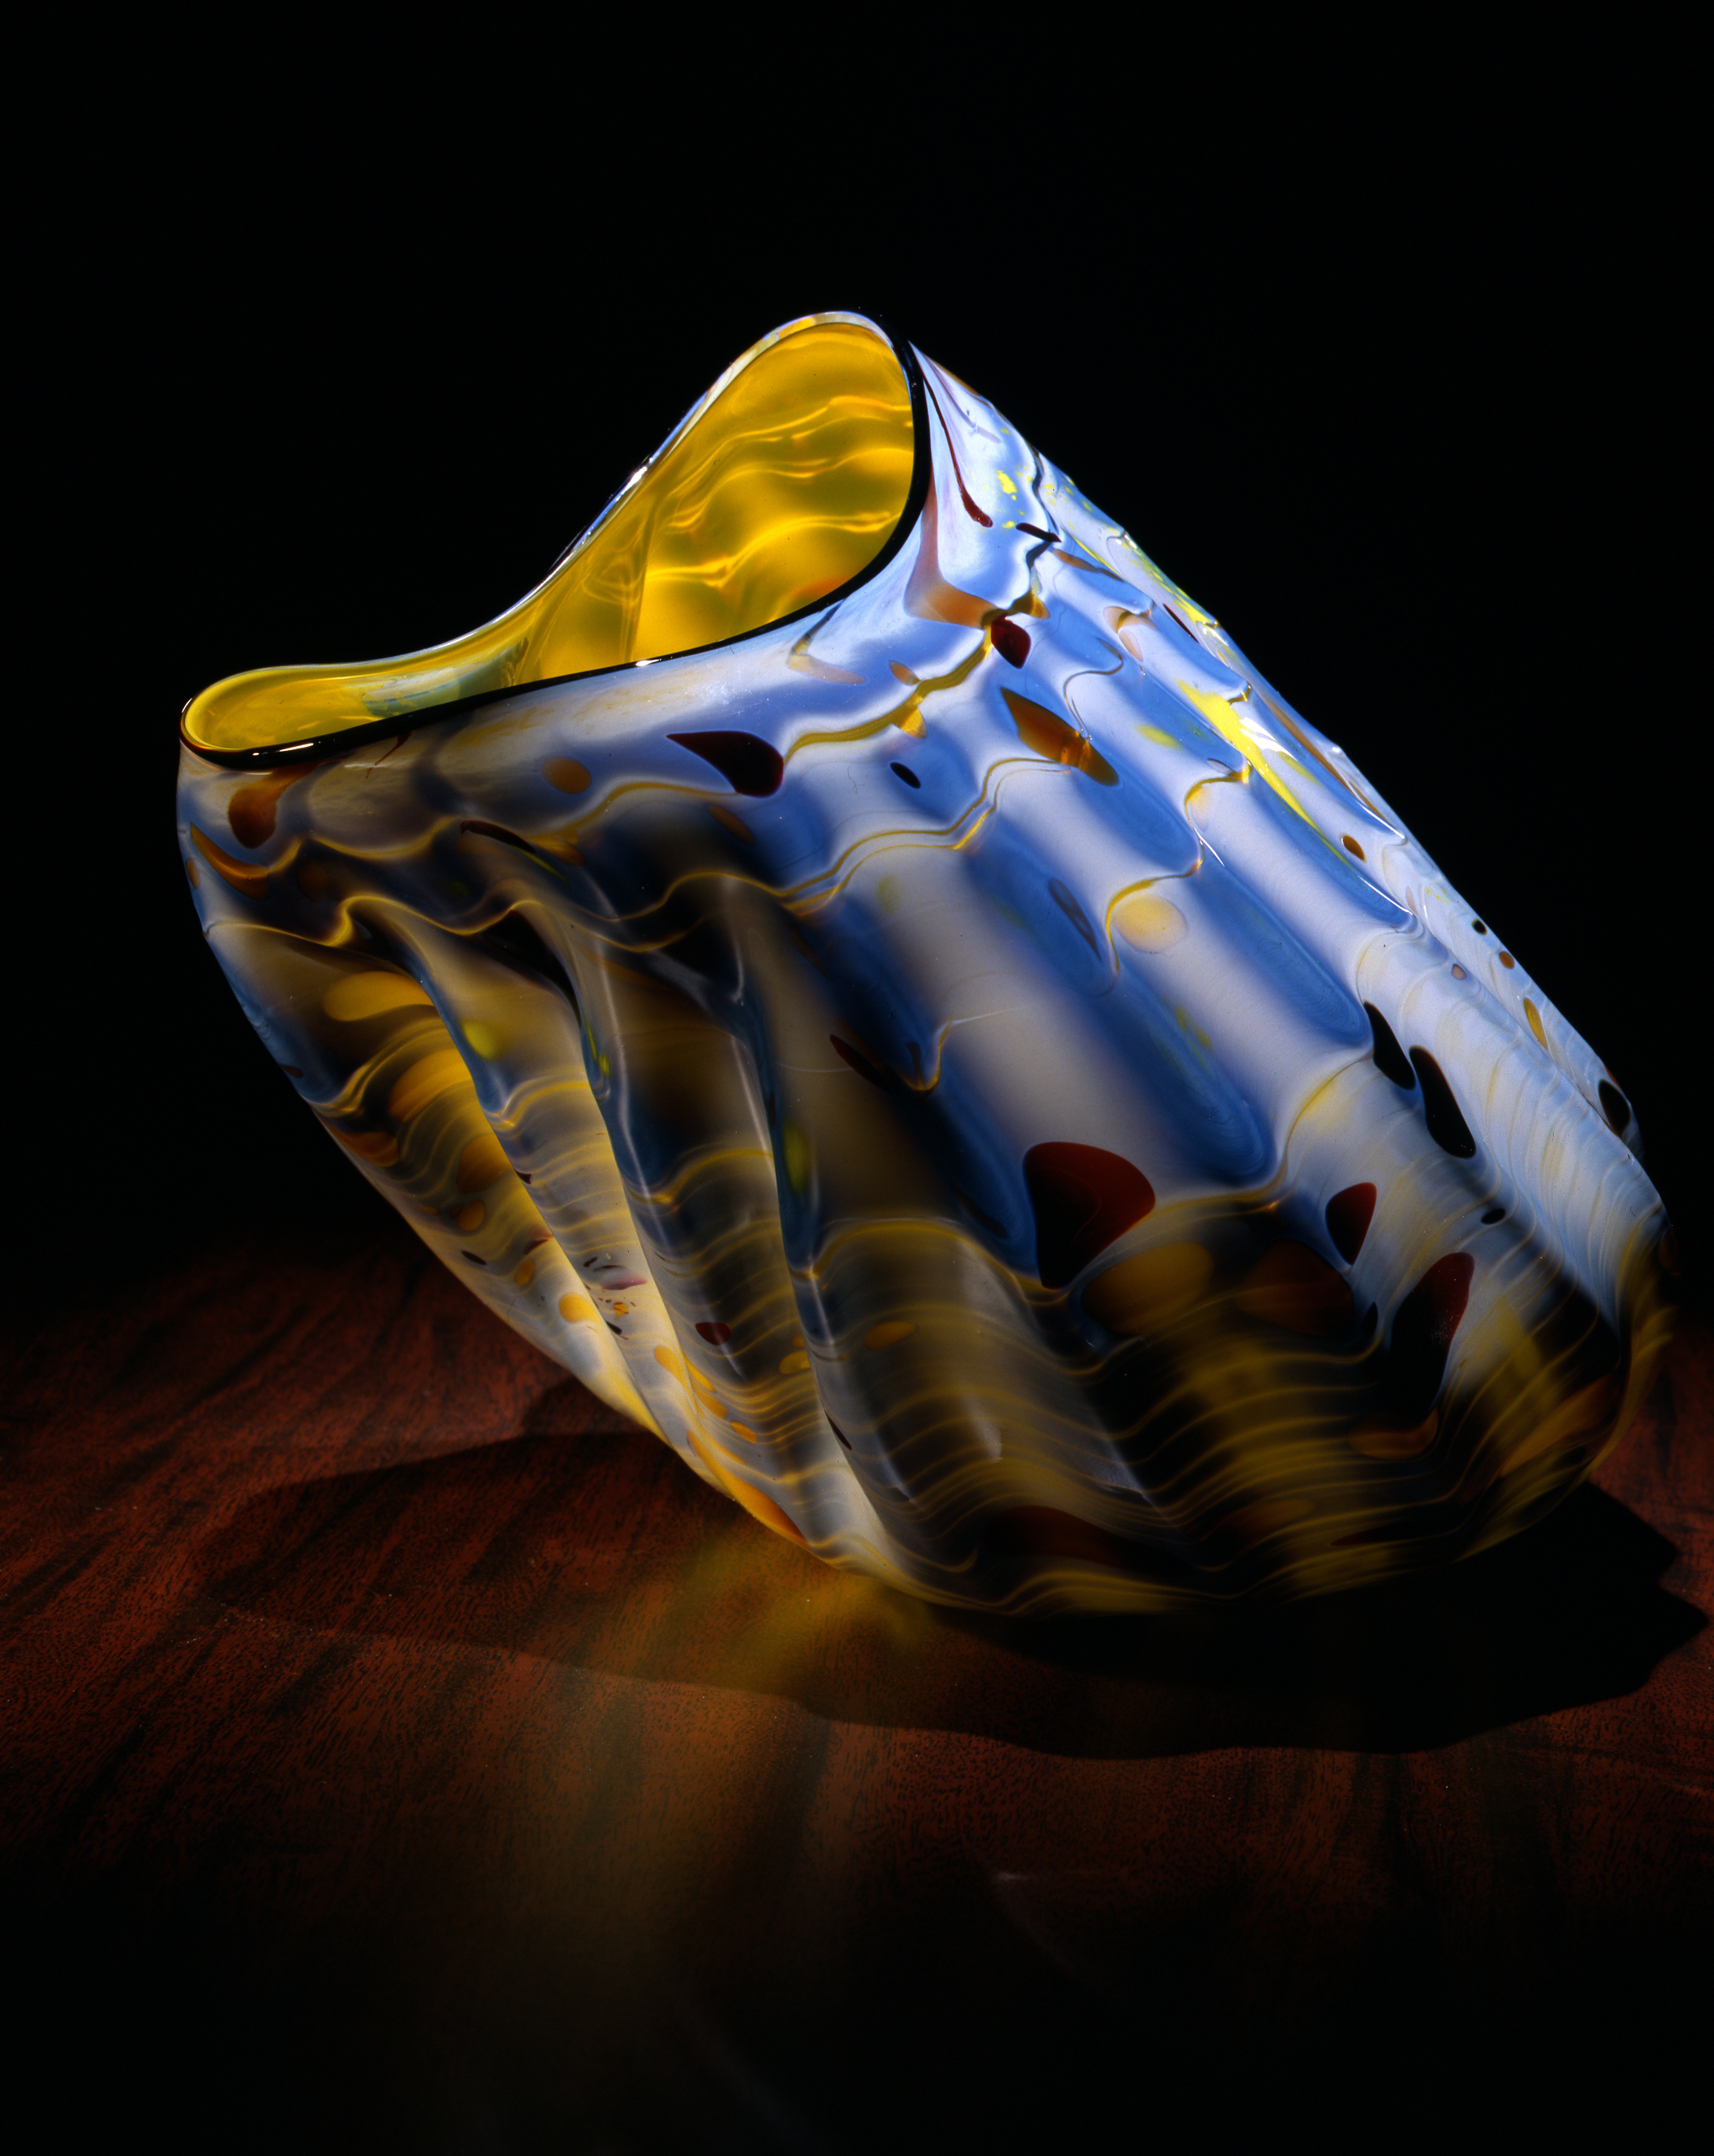 Dale Chihuly,  Angorra Yellow Macchia with Black Charcoal Lip Wrap (1982, glass, 6 x 9 x 7 inches), DC.123